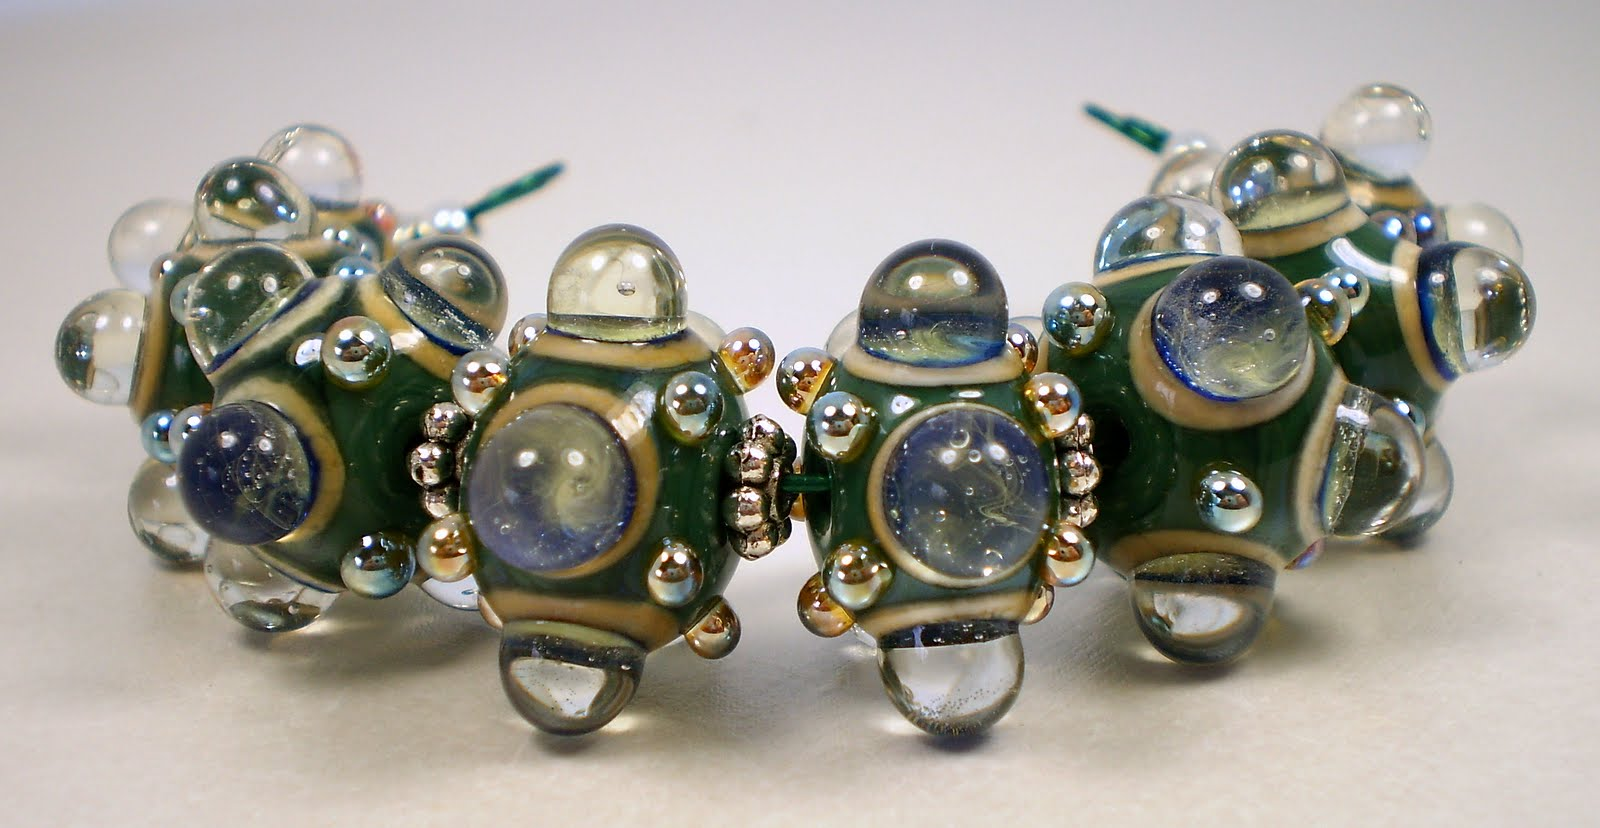 Pendragonfyre Tales - A Journey of Life Through Lampwork Glass: May 2012